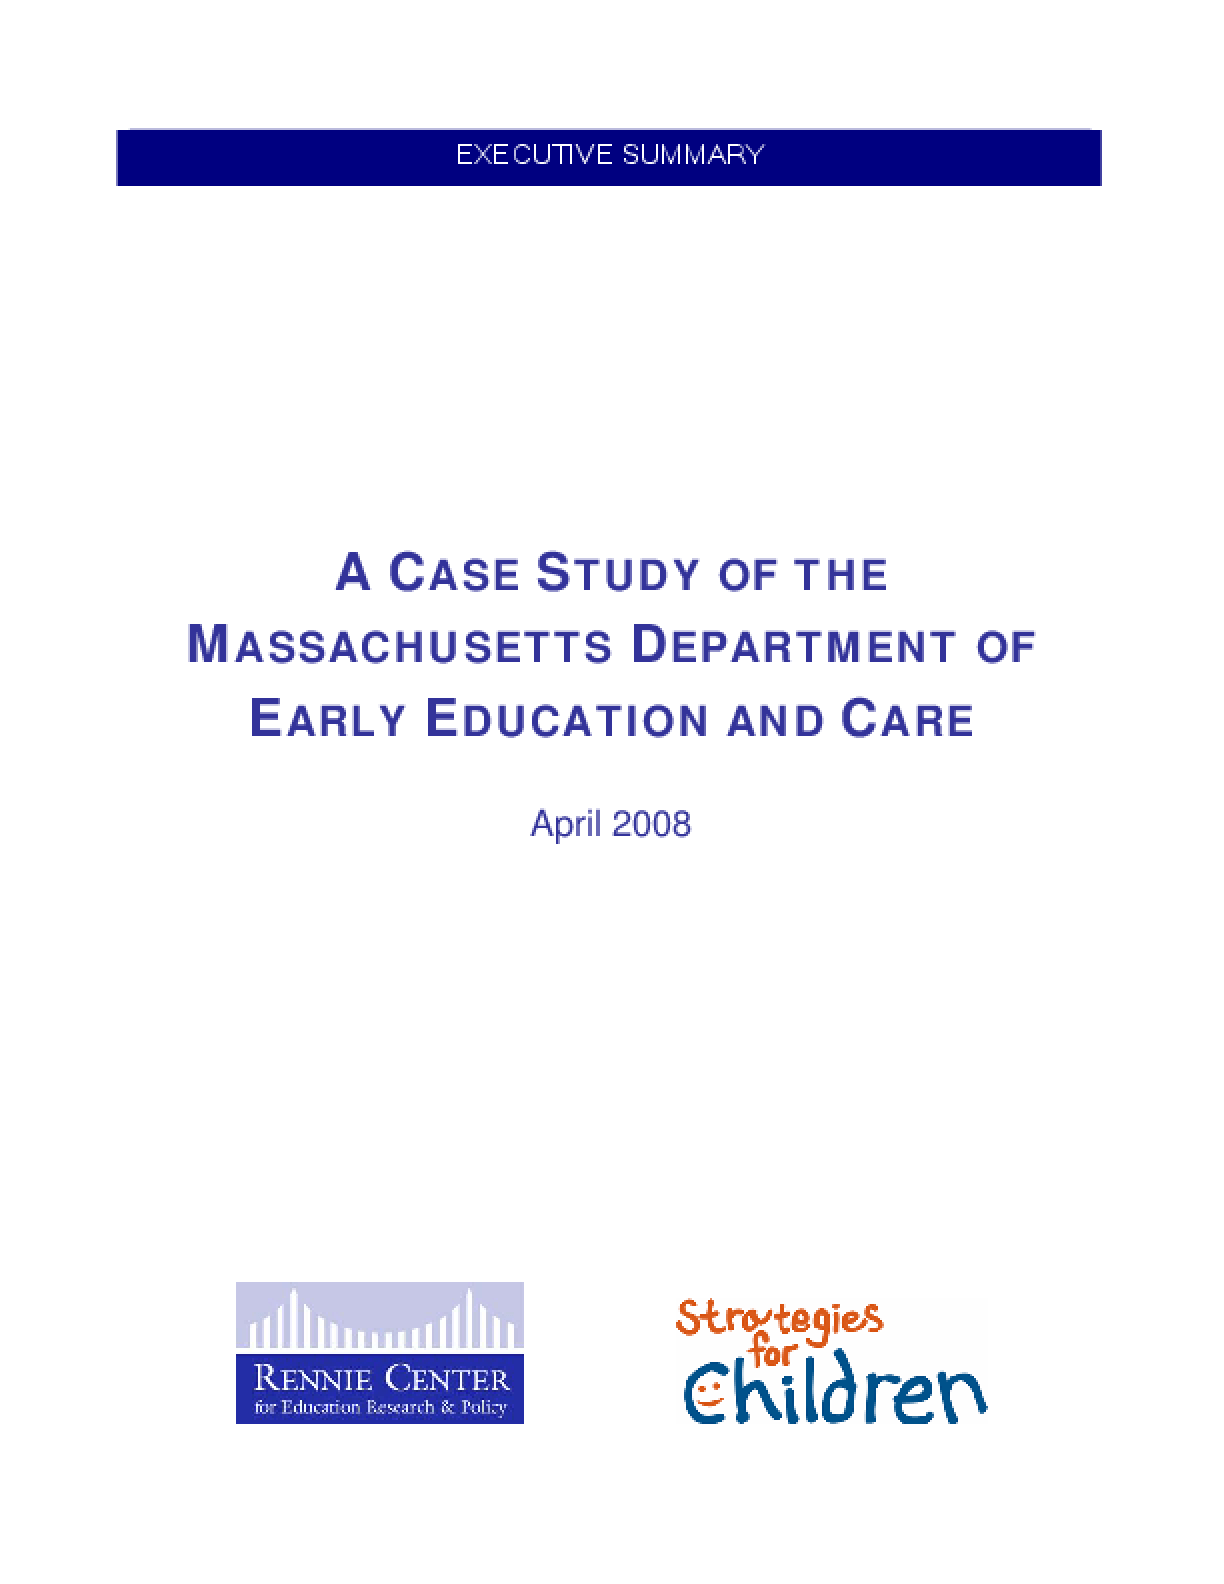 A Case Study of the Massachusetts Department of Early Education and Care - Executive Summary